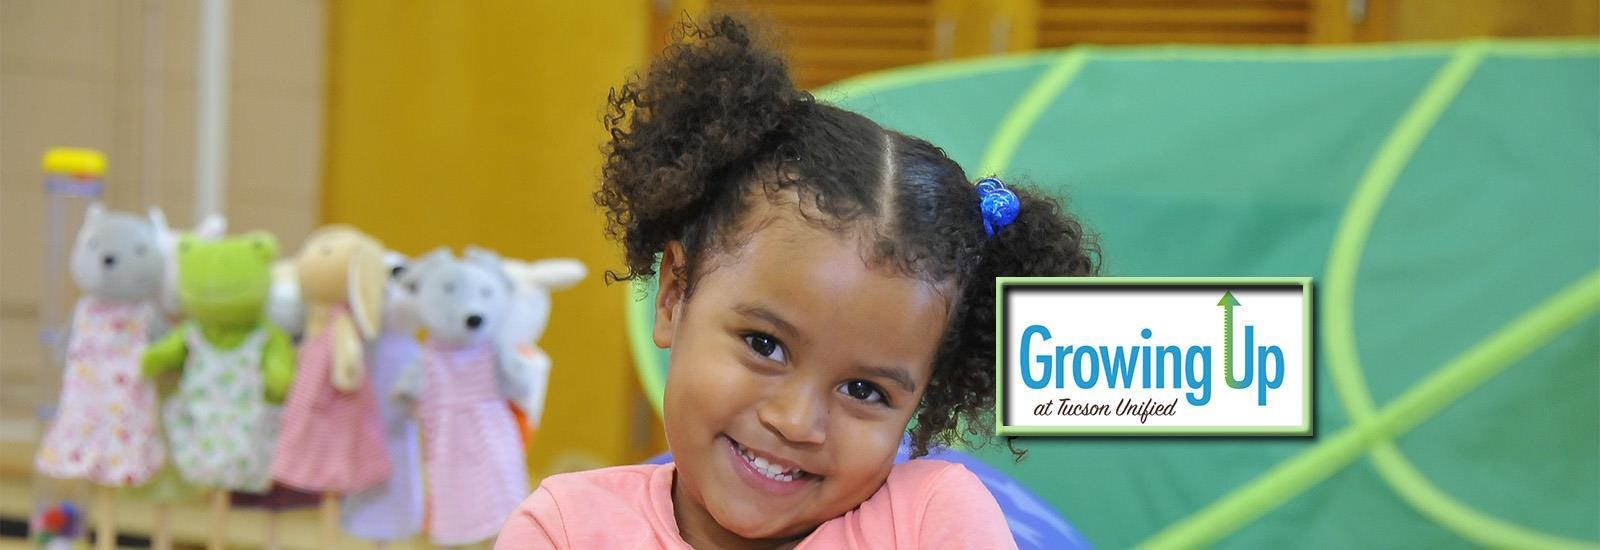 High quality affordable care for infants and young children at our Infant and Early Learning Centers